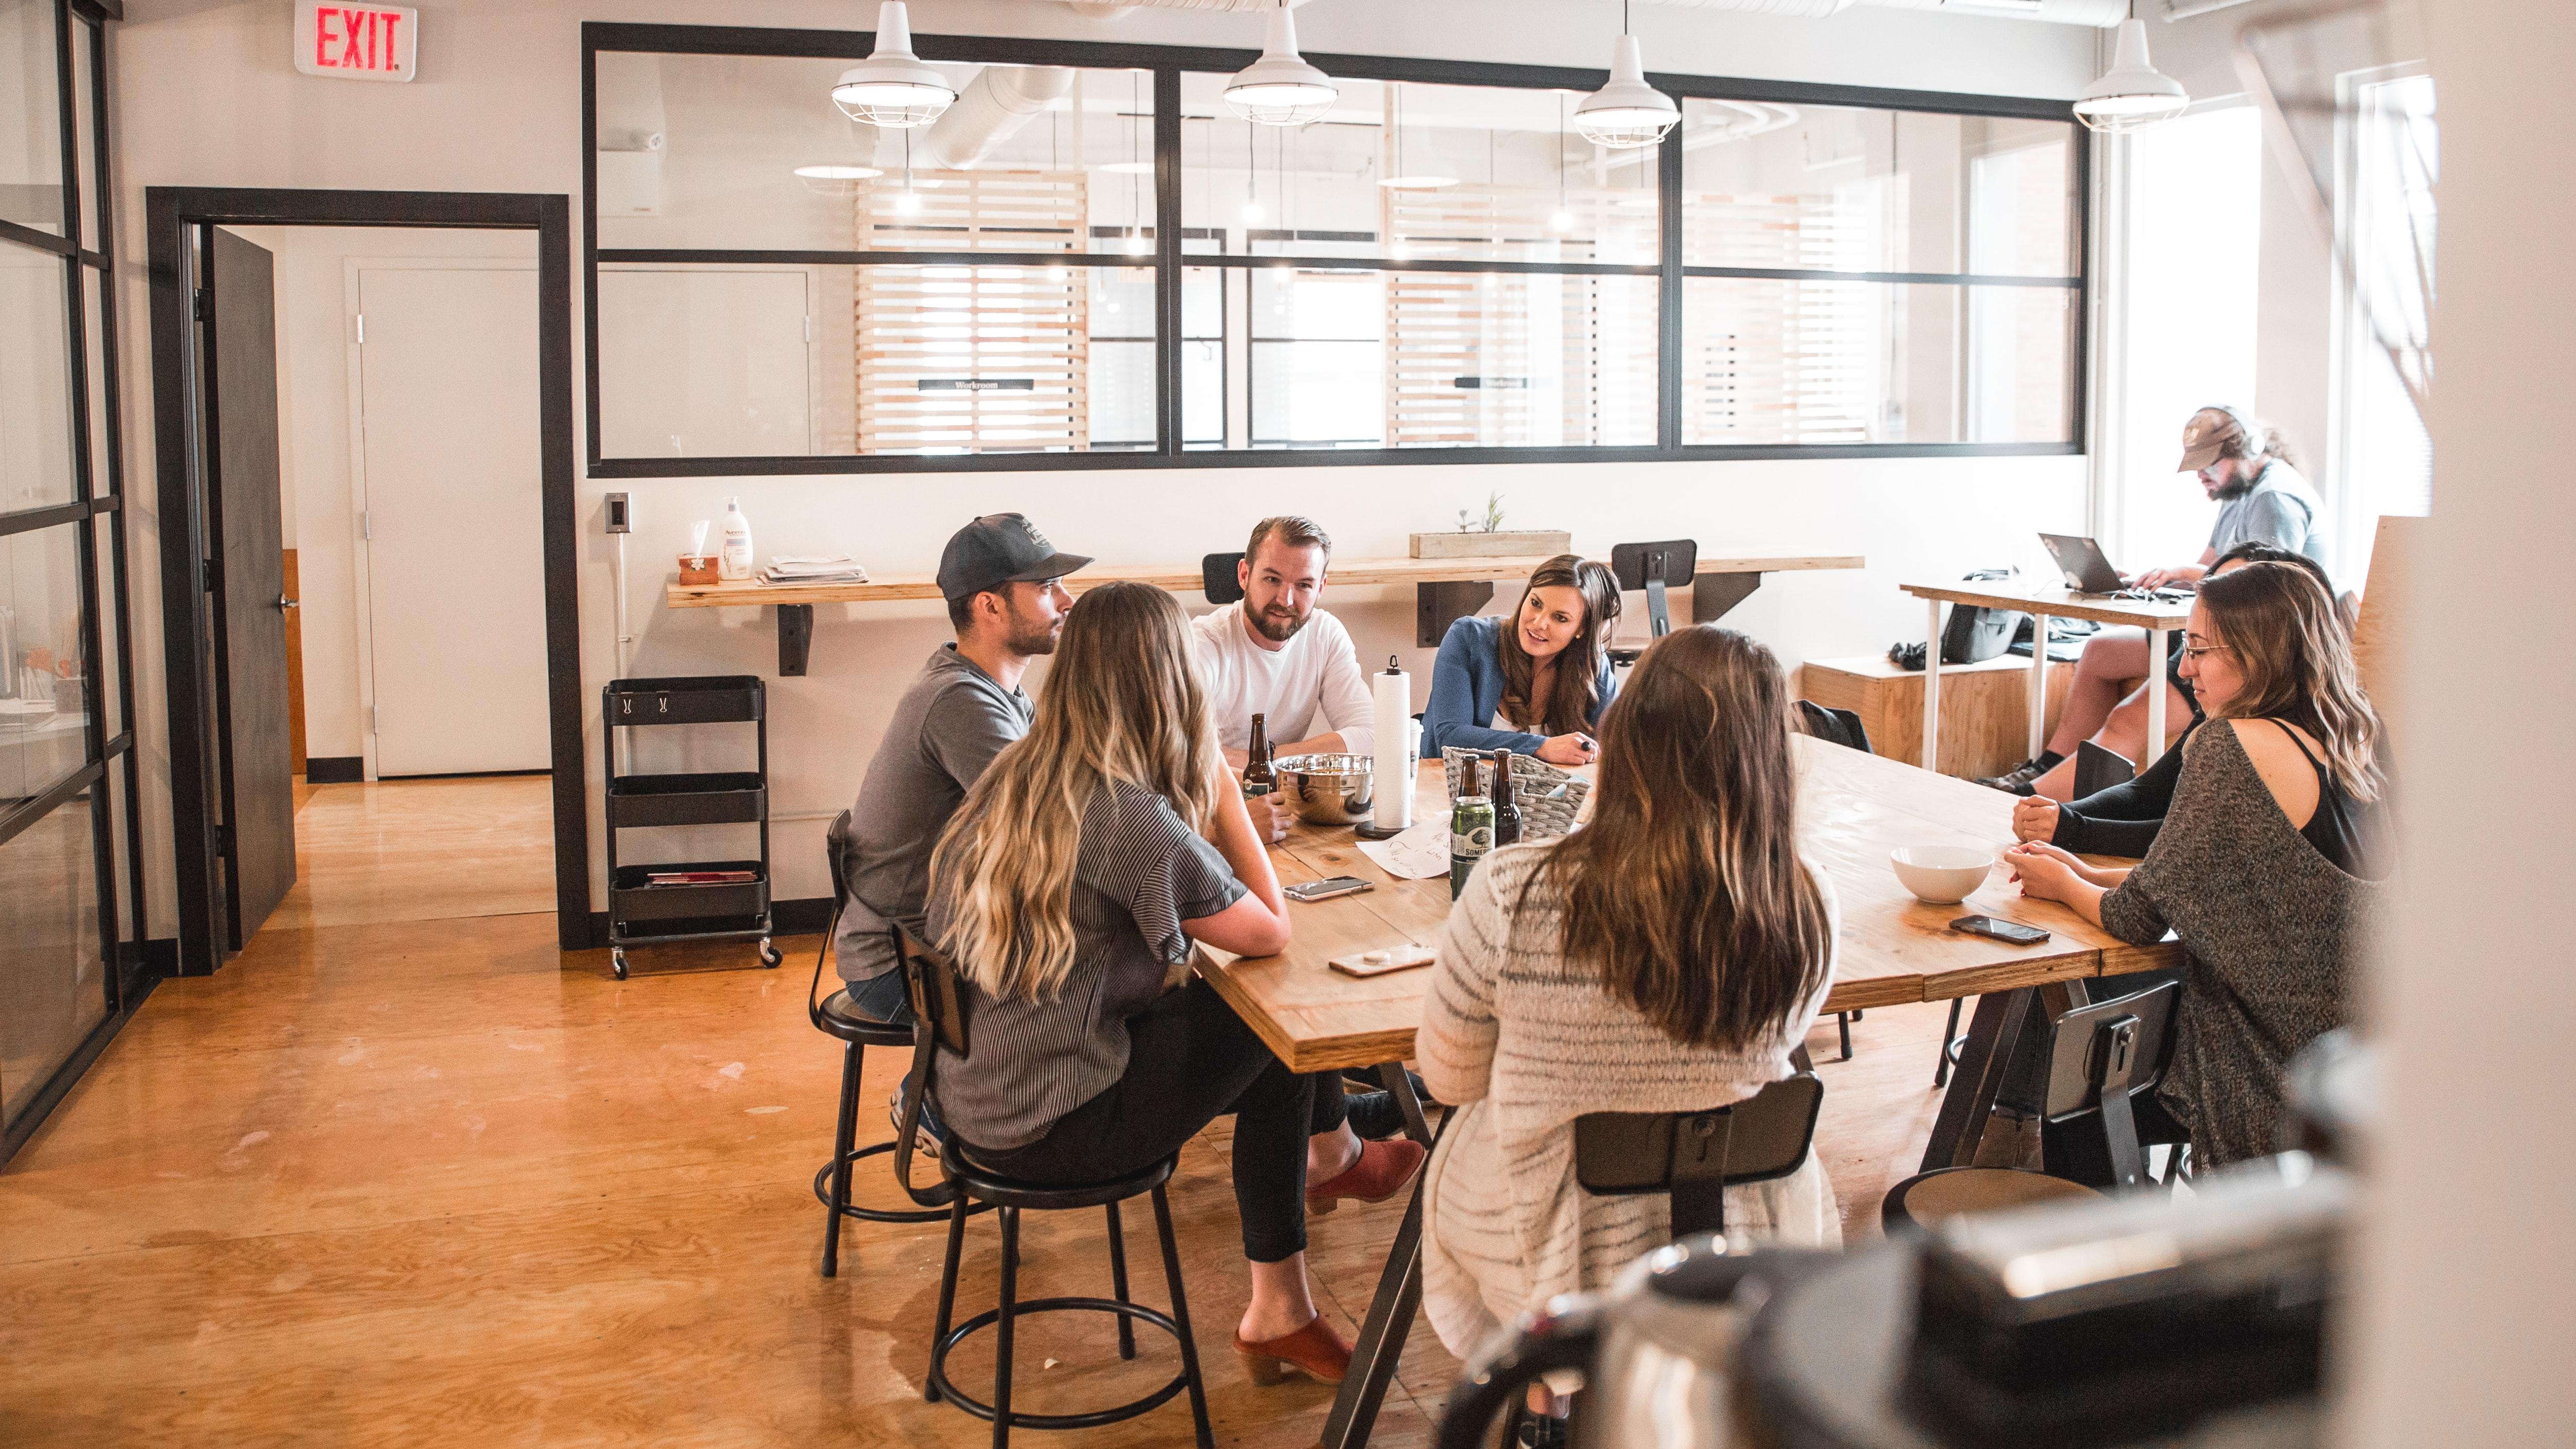 Authentic Ways to Build Relationships With Your Employees (Even While You're All Still Remote)